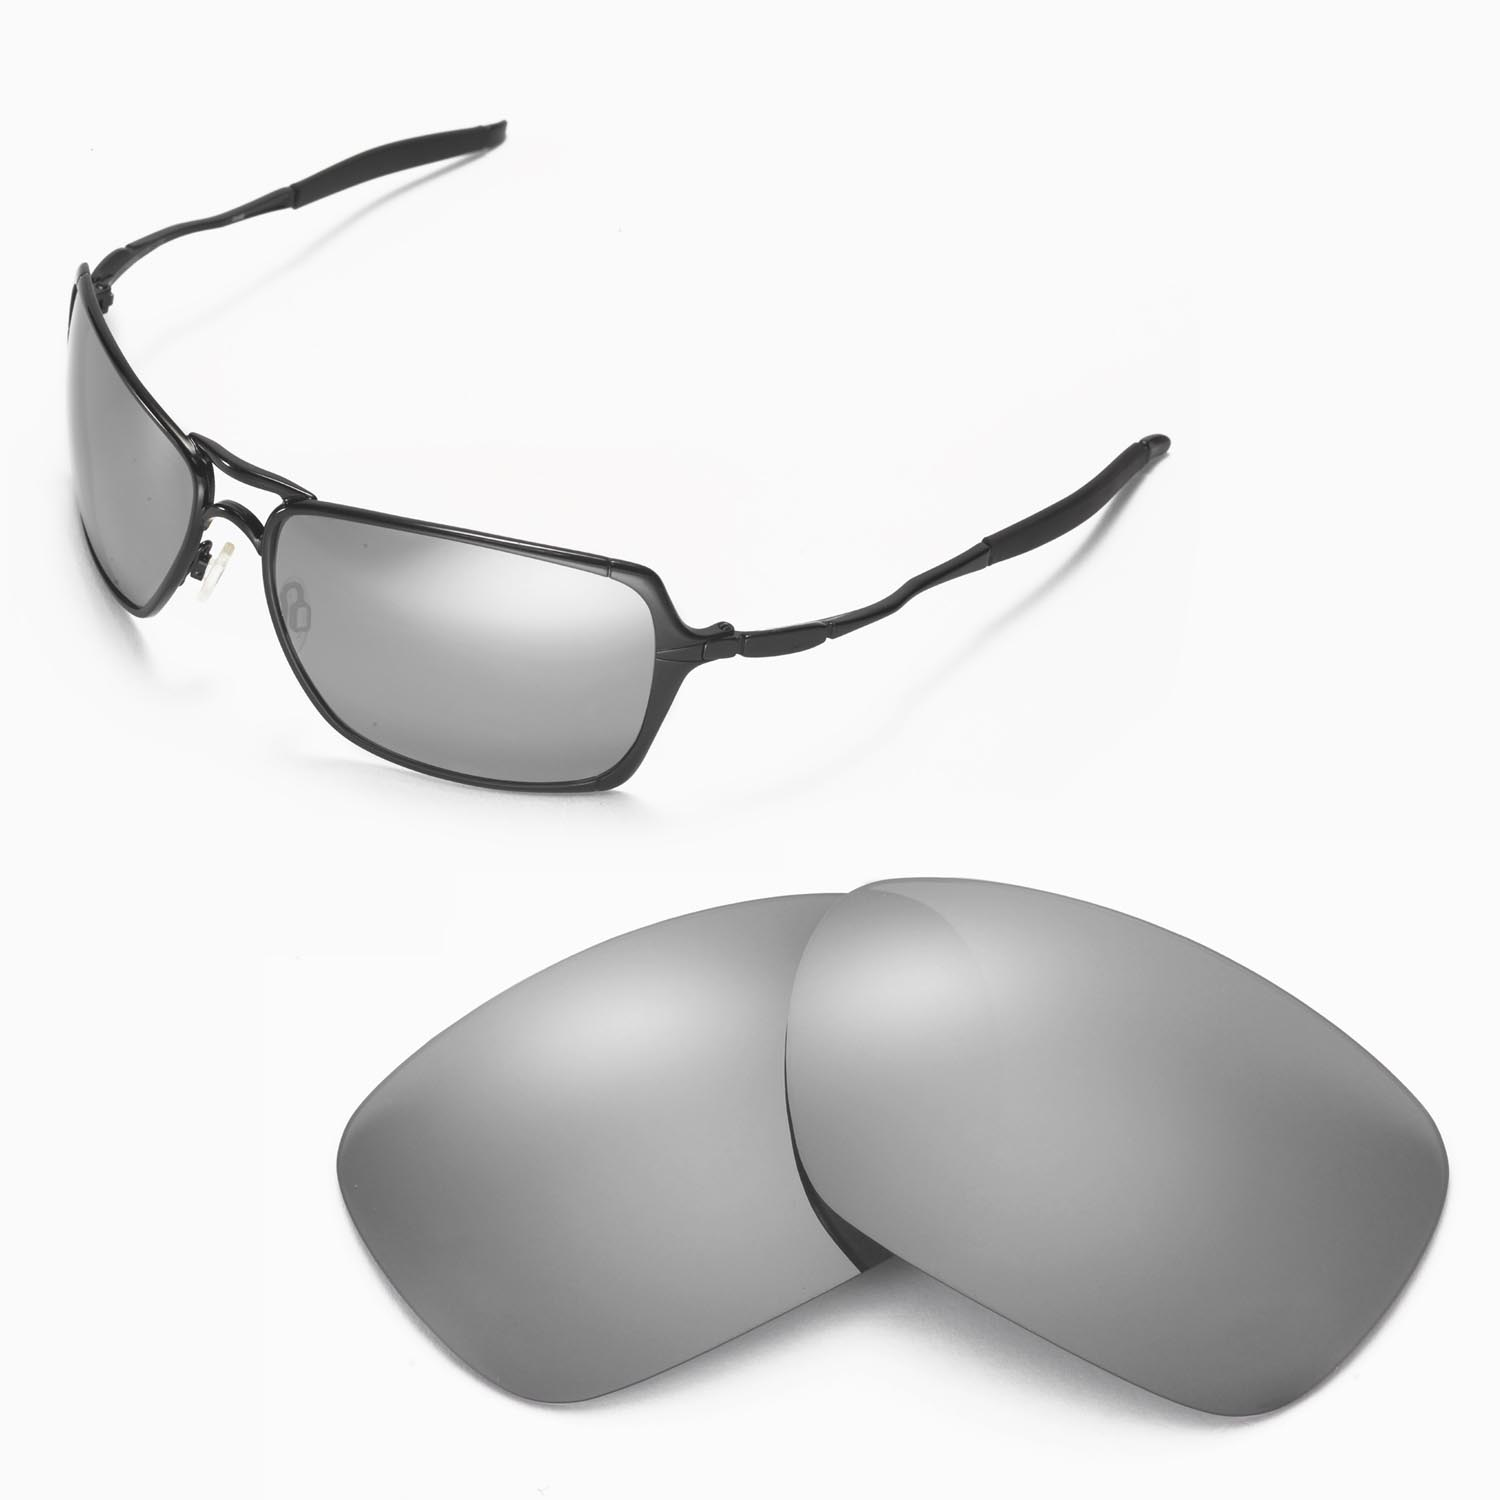 eff4487da92c4 Details about New Walleva Polarized Titanium Replacement Lenses For Oakley  Inmate Sunglasses